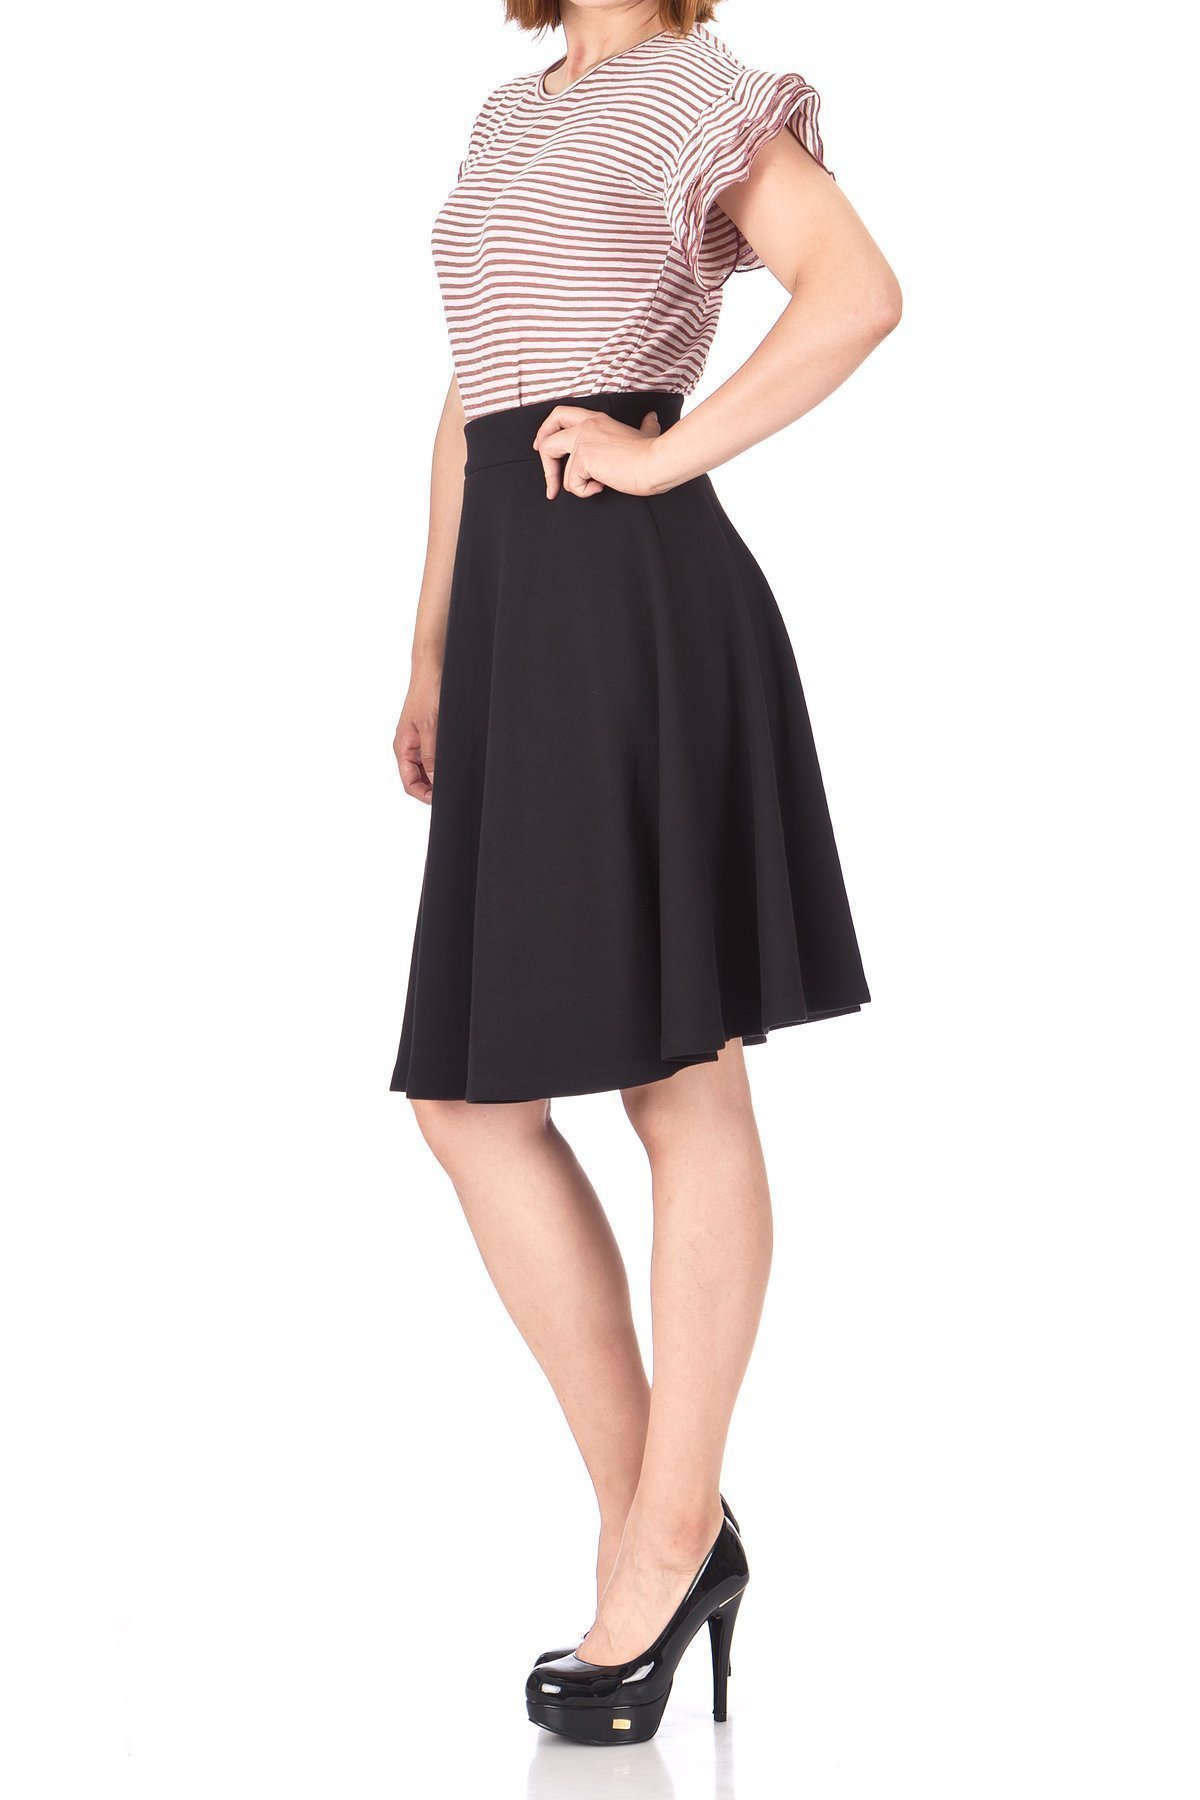 Comfy and Lovely Cotton Blend Versatile Casual Office High Waist A line Full Flared Swing Circle Skater Knee Length Skirt Black 03 1